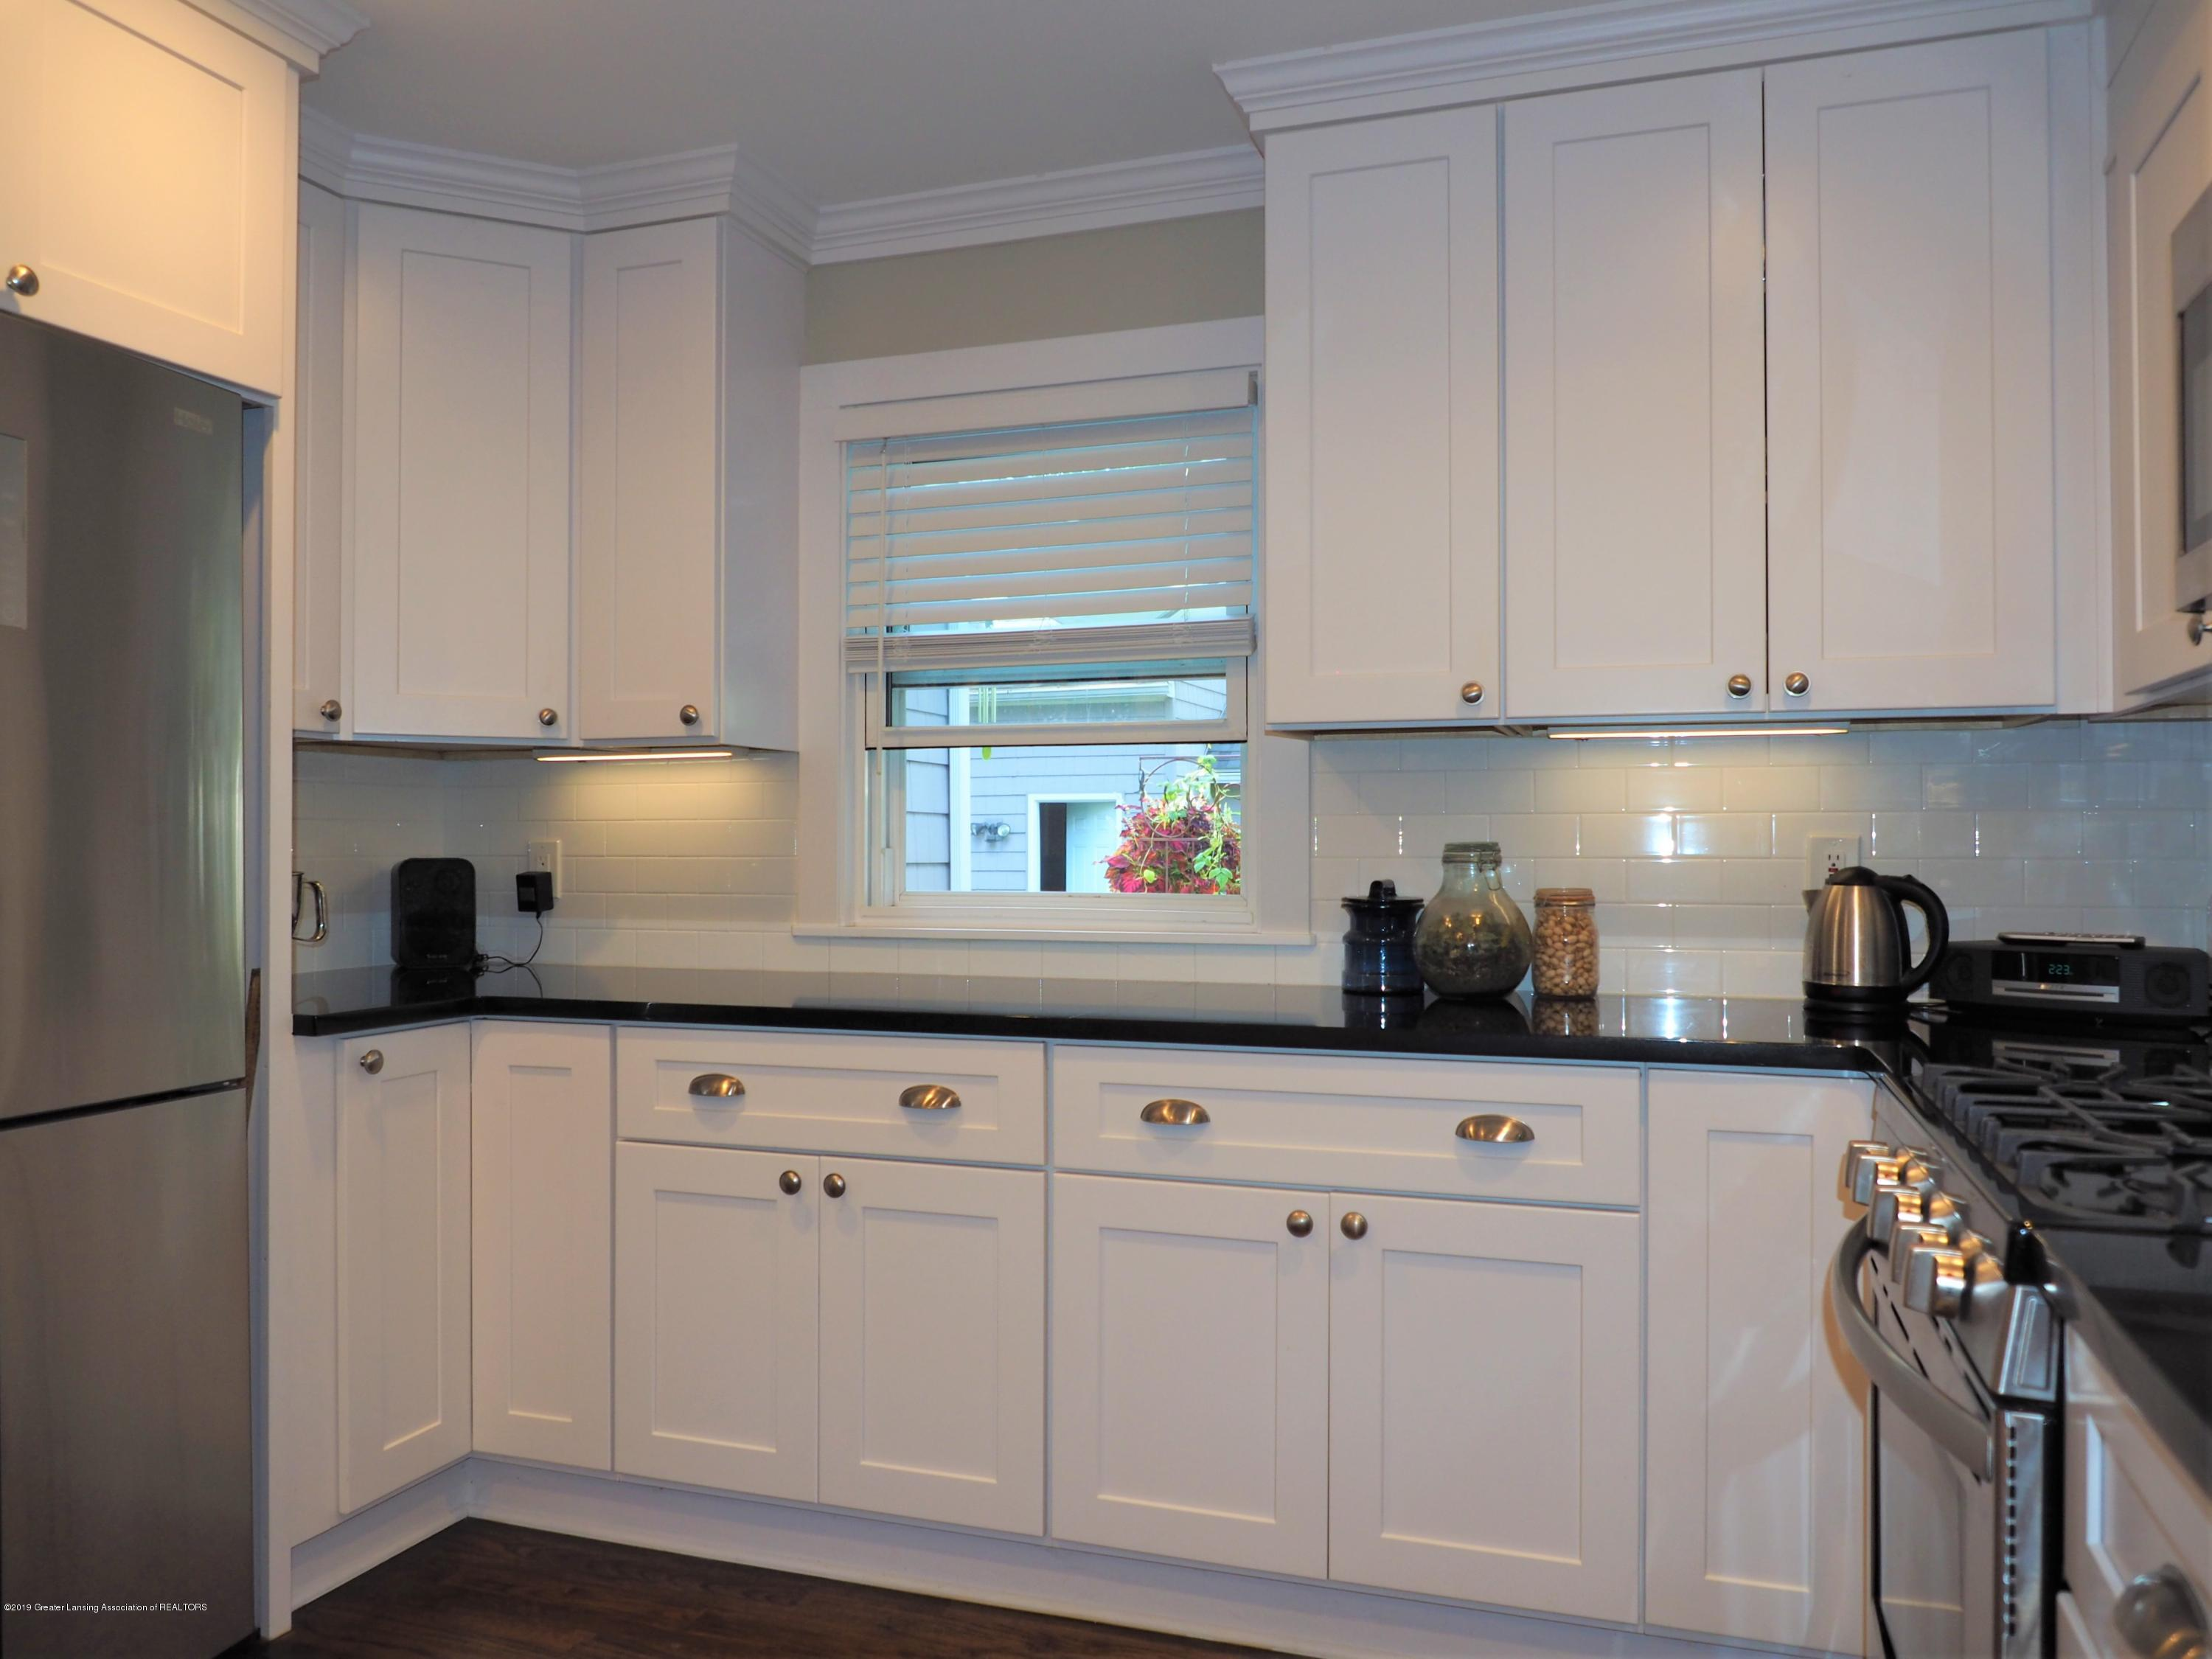 343 Cowley Ave - P1011436 - 14